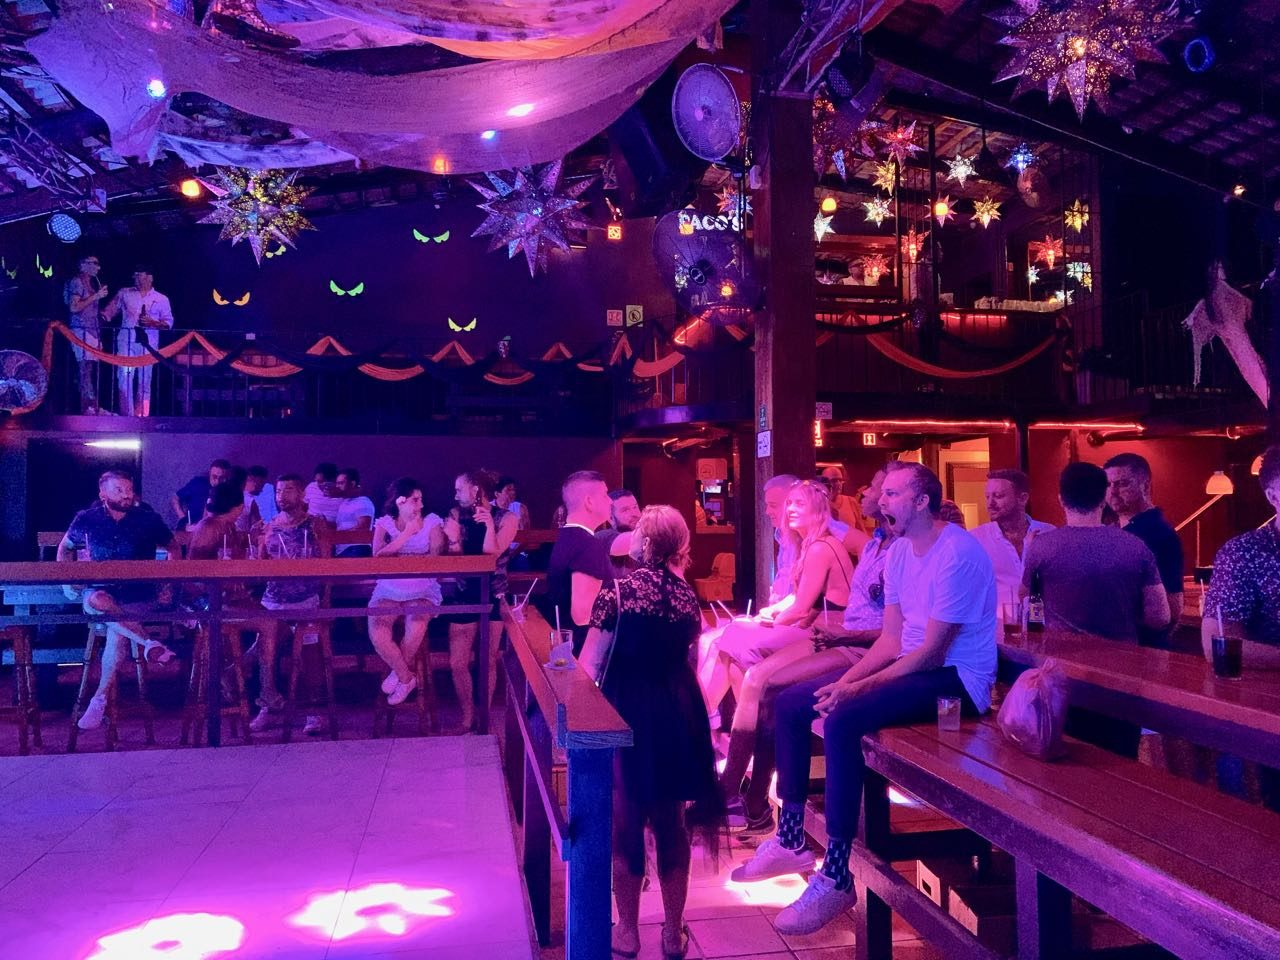 Paco's Ranch is considered to be one of Puerto Vallarta's most iconic gay bars.